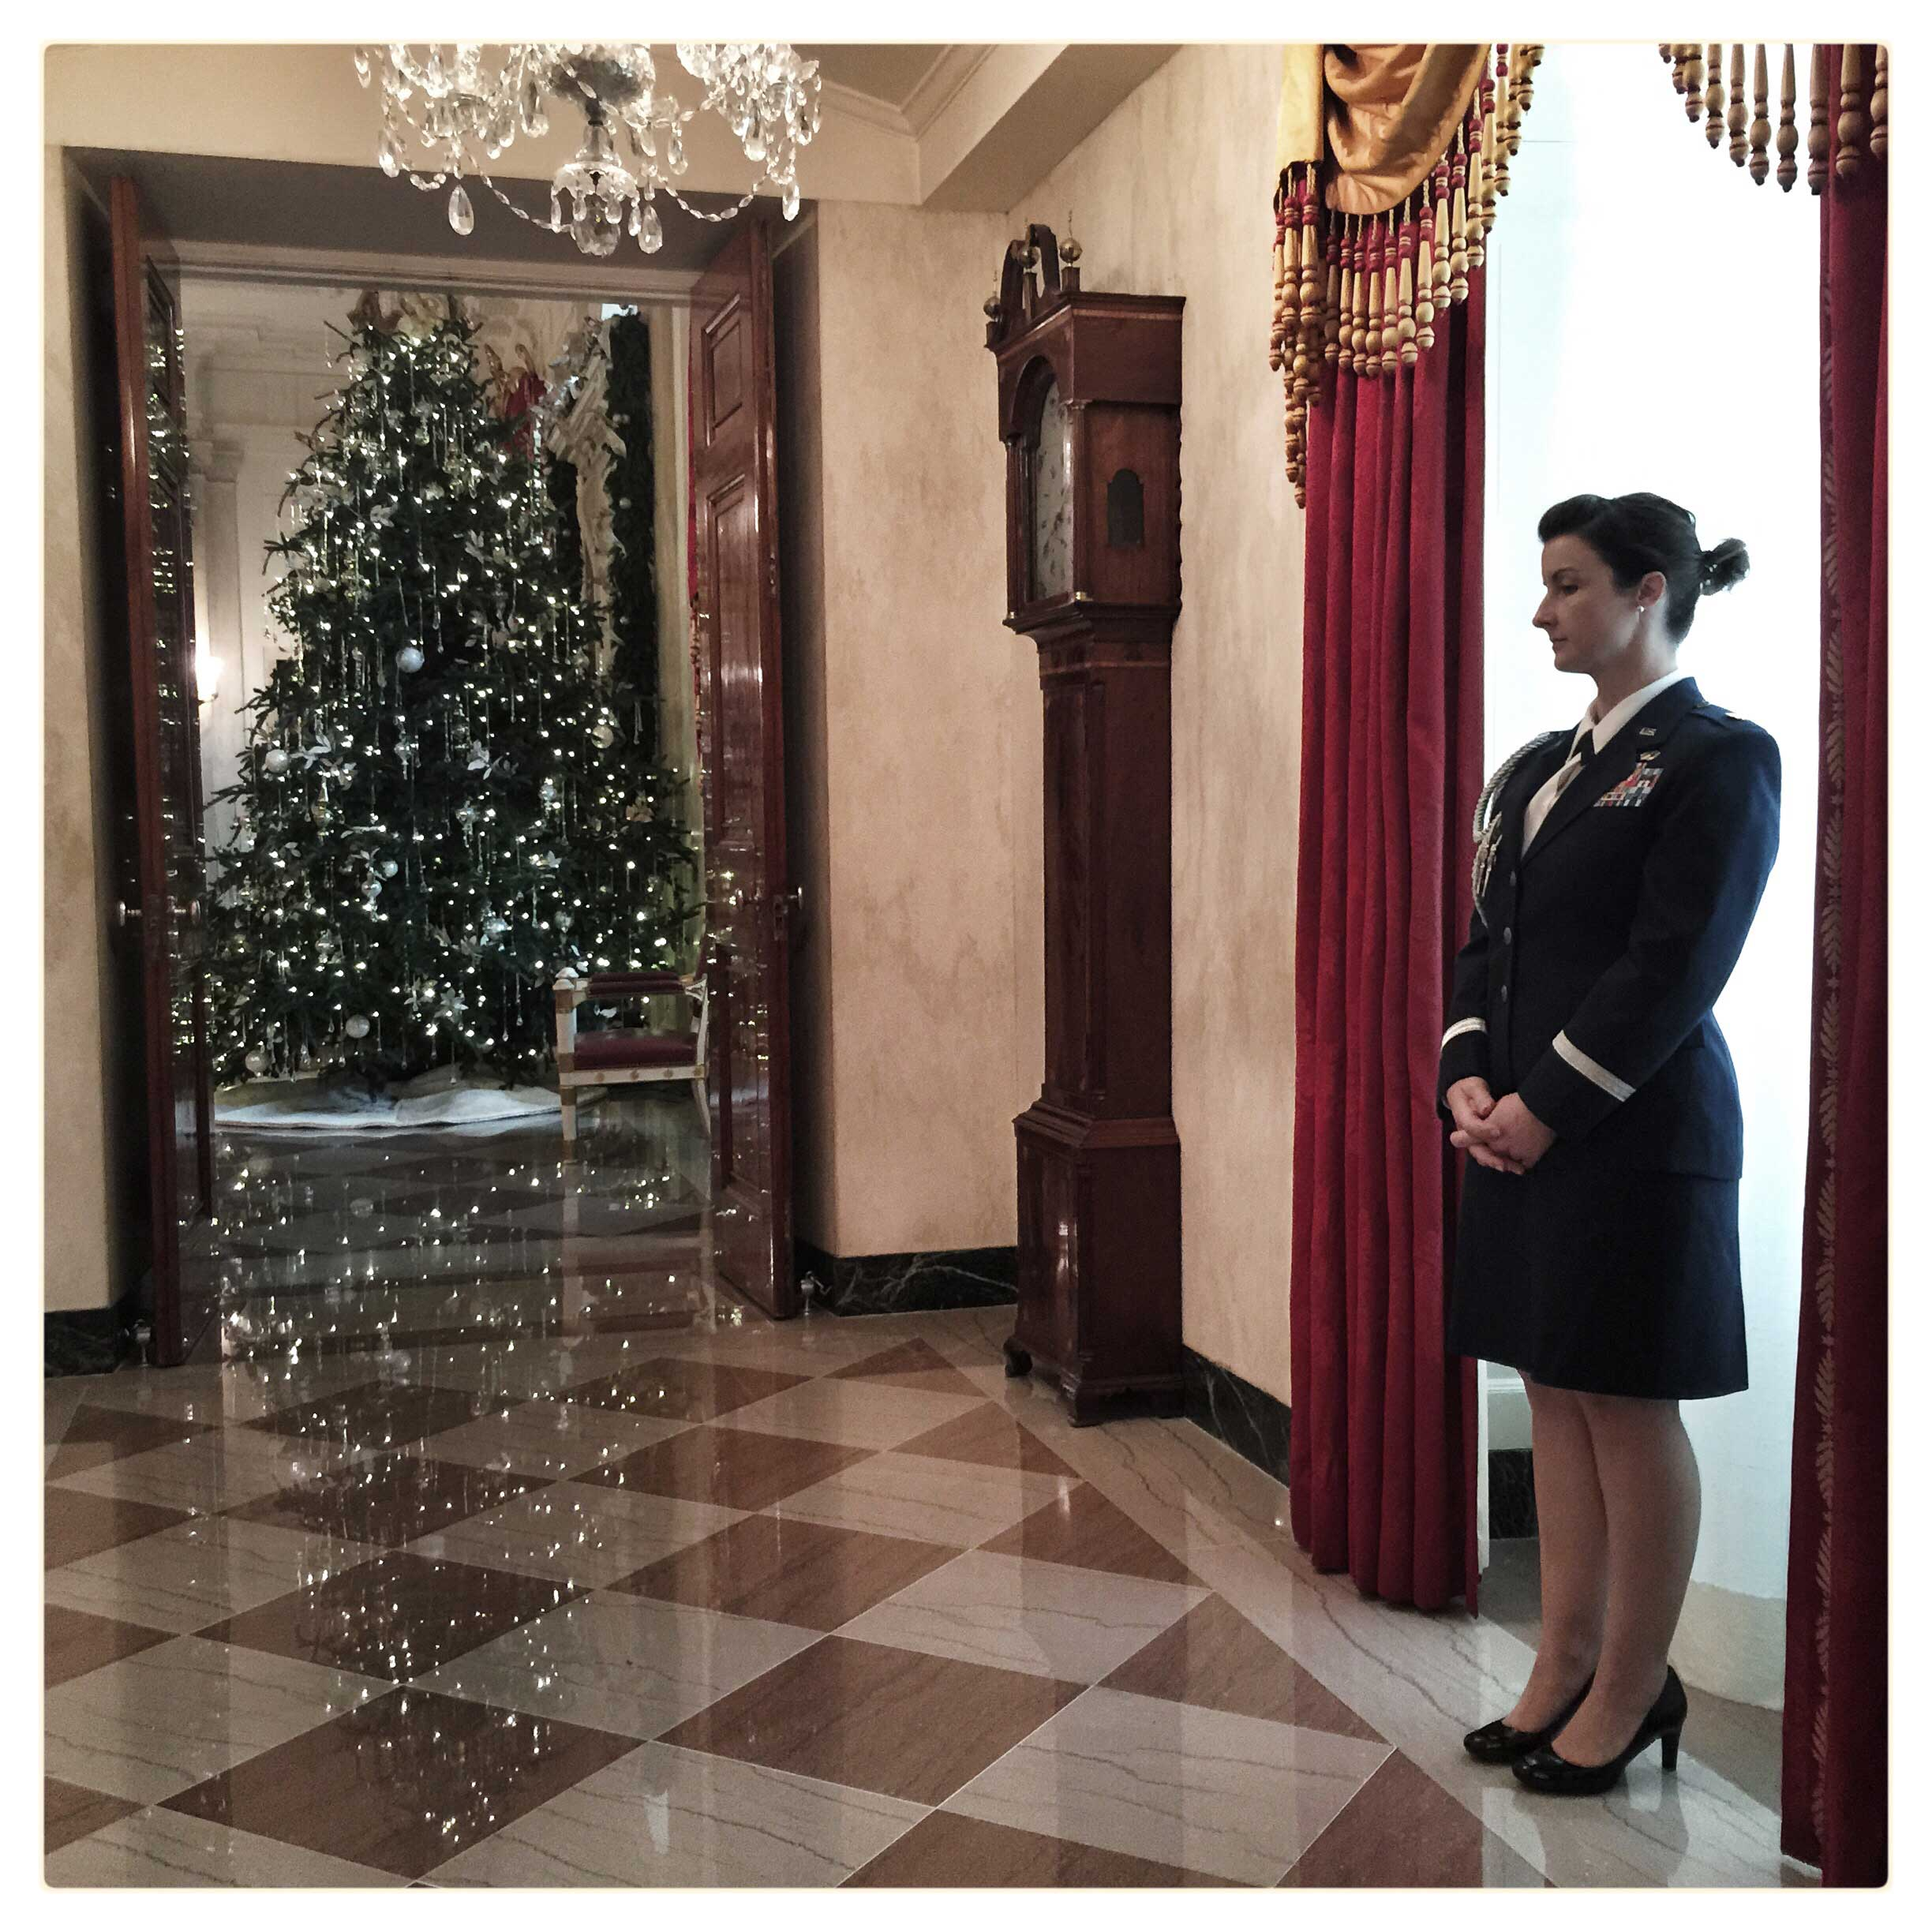 A member of the military stands near holiday decorations at the White House.